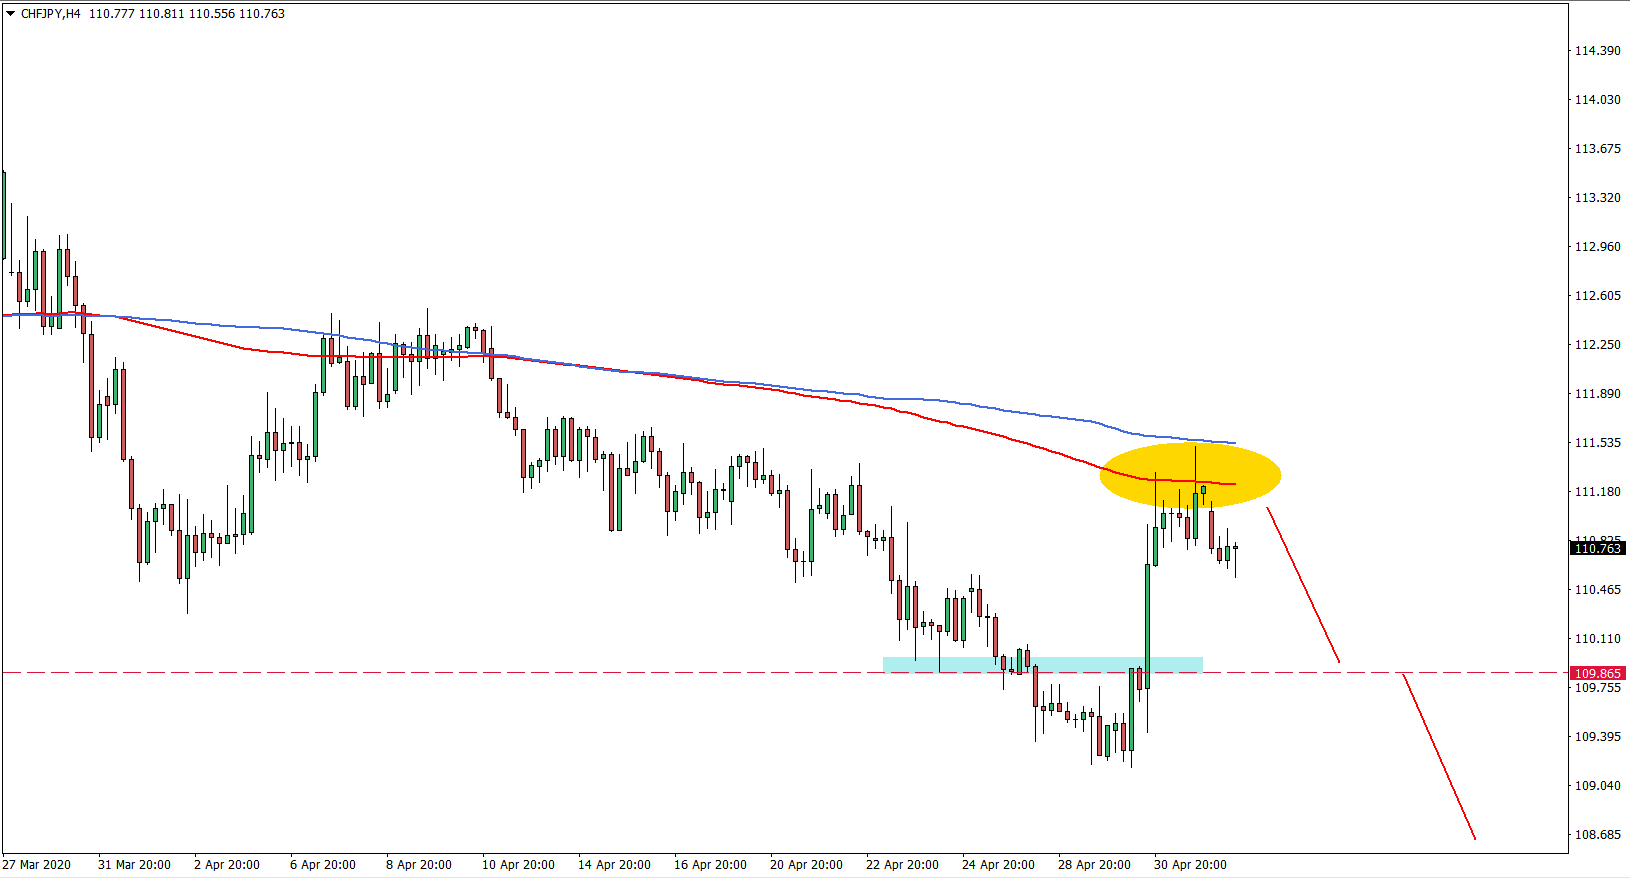 CHFJPY 4H Chart May 4th 2020